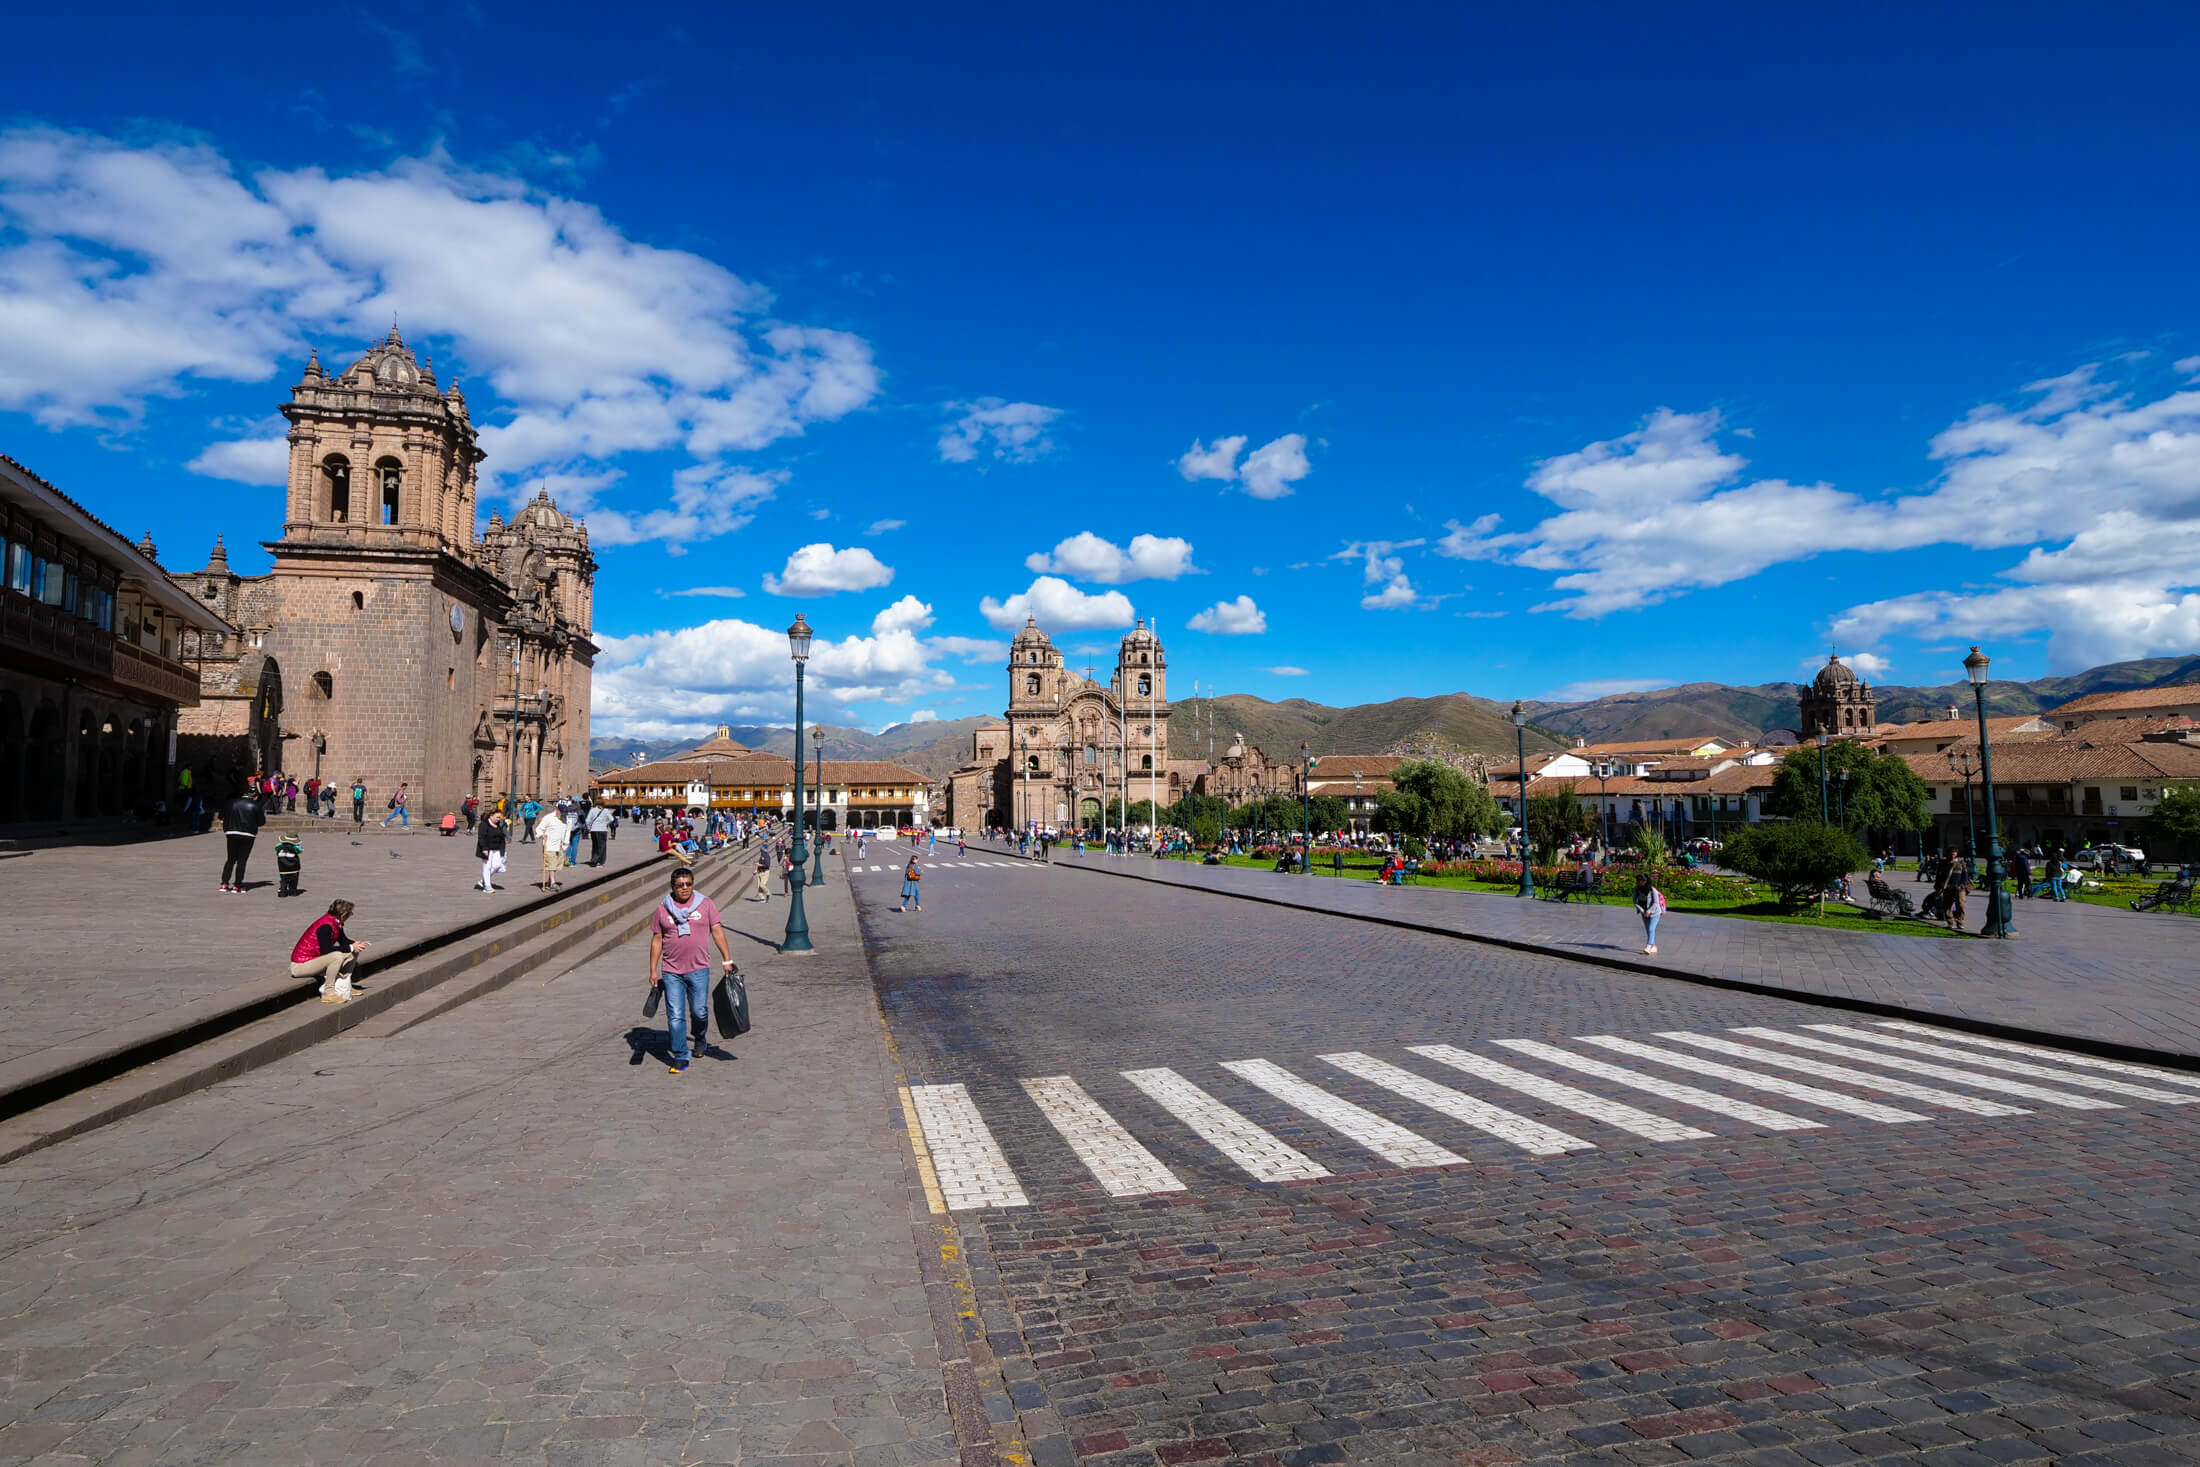 Plaza de Armas is a huge square in the Historic area of Cusco